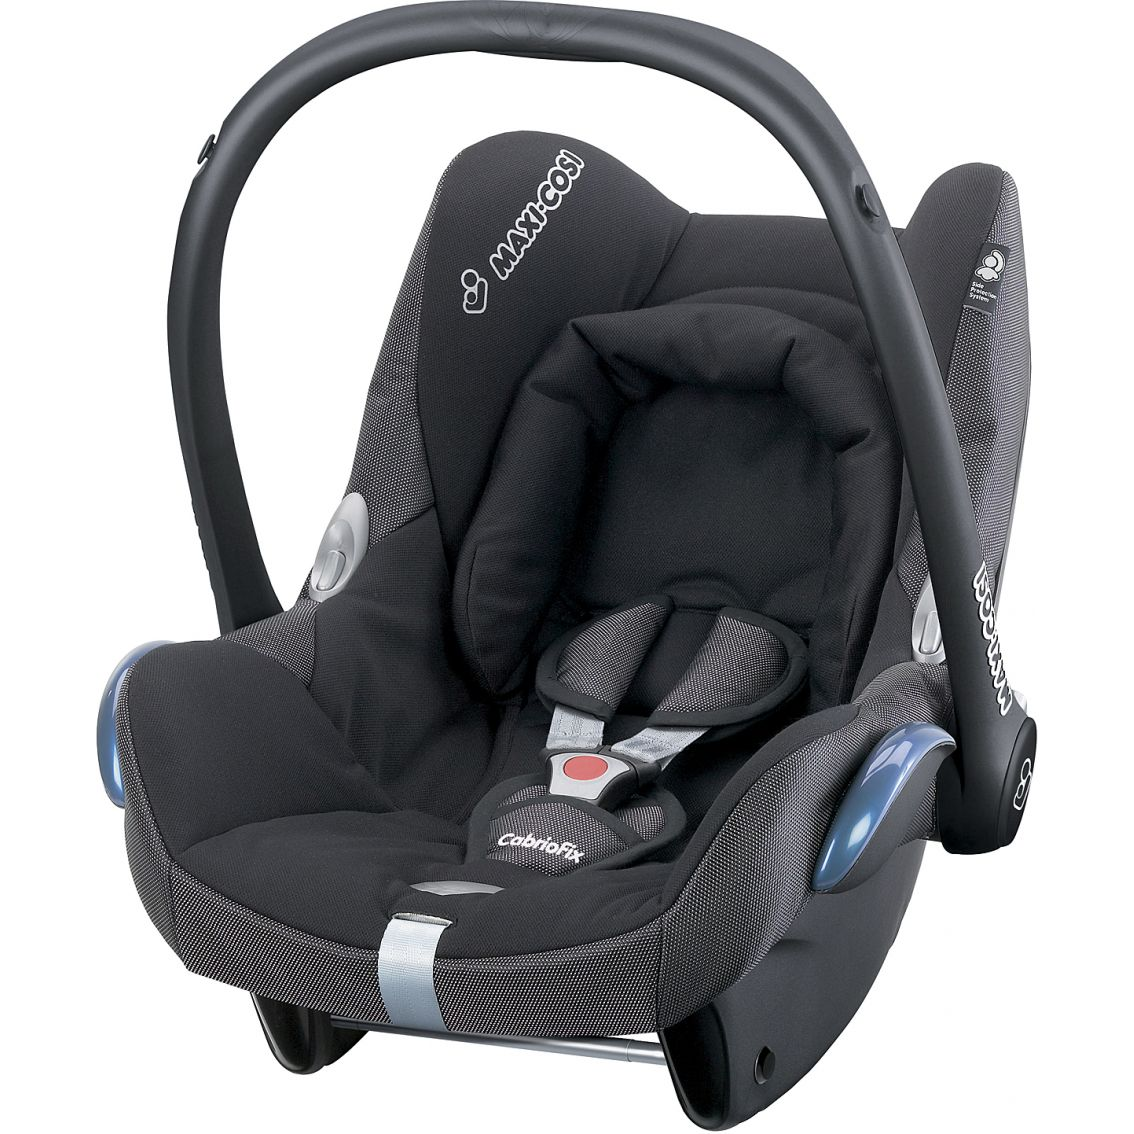 Maxi cosi cabriofix car seat available from w h watts pram for Maxi cosi housse